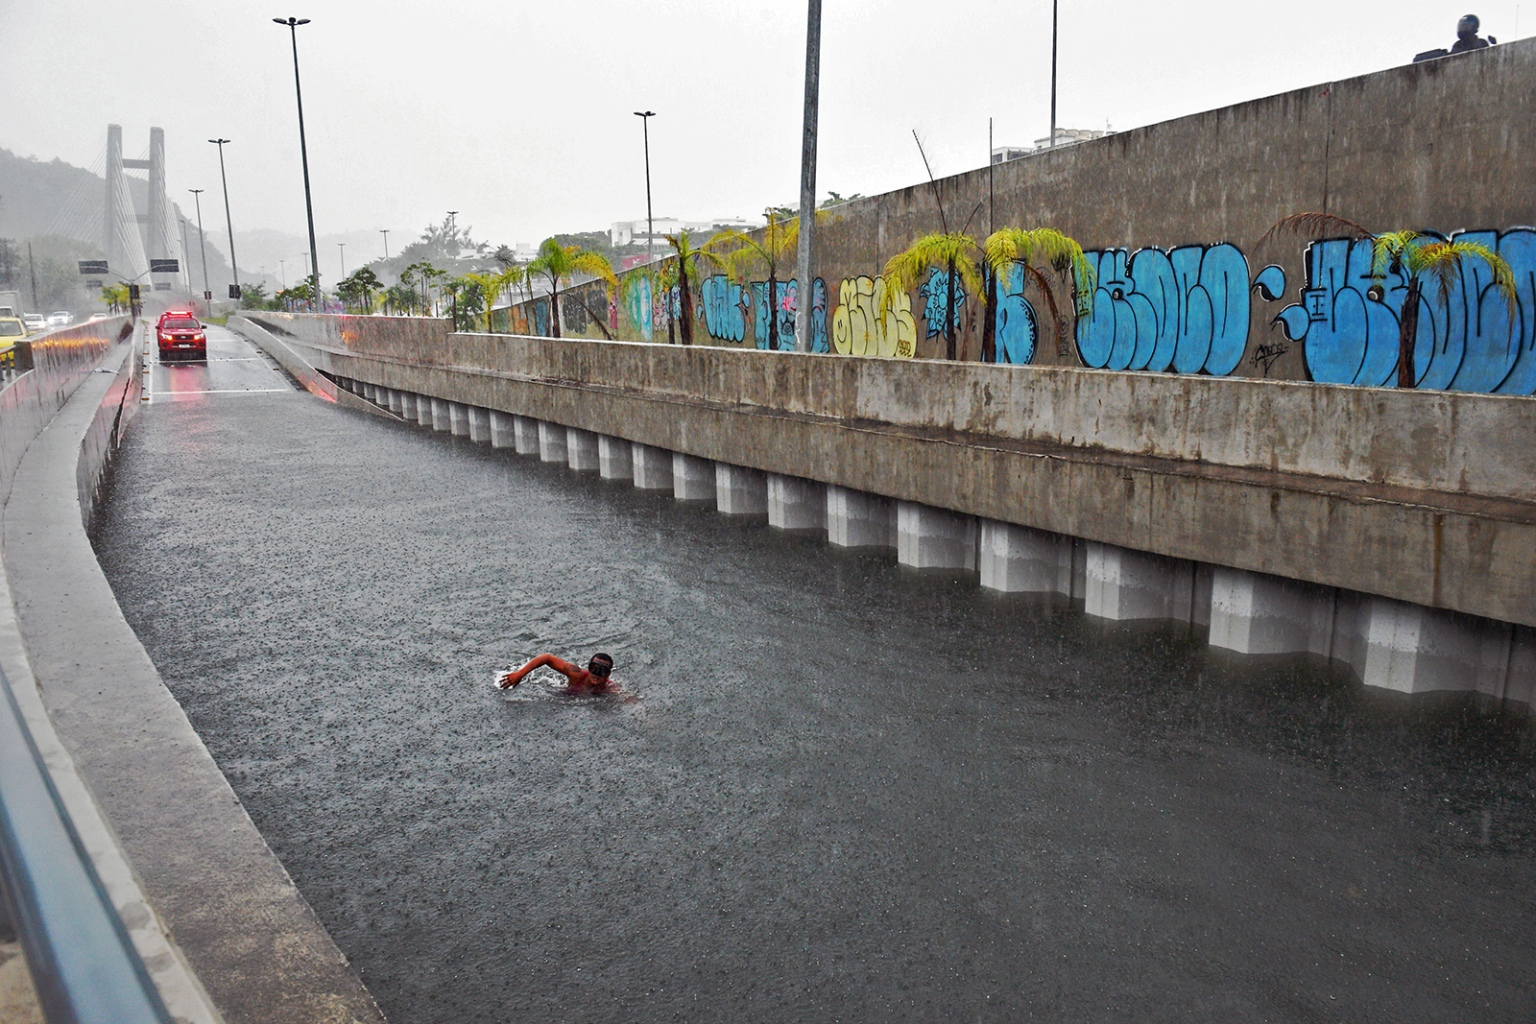 A firefighter of the underwater unit dives to inspect a submerged car at a flooded road tunnel after heavy rains in Rio de Janeiro on April 9. CARL DE SOUZA/AFP/Getty Images